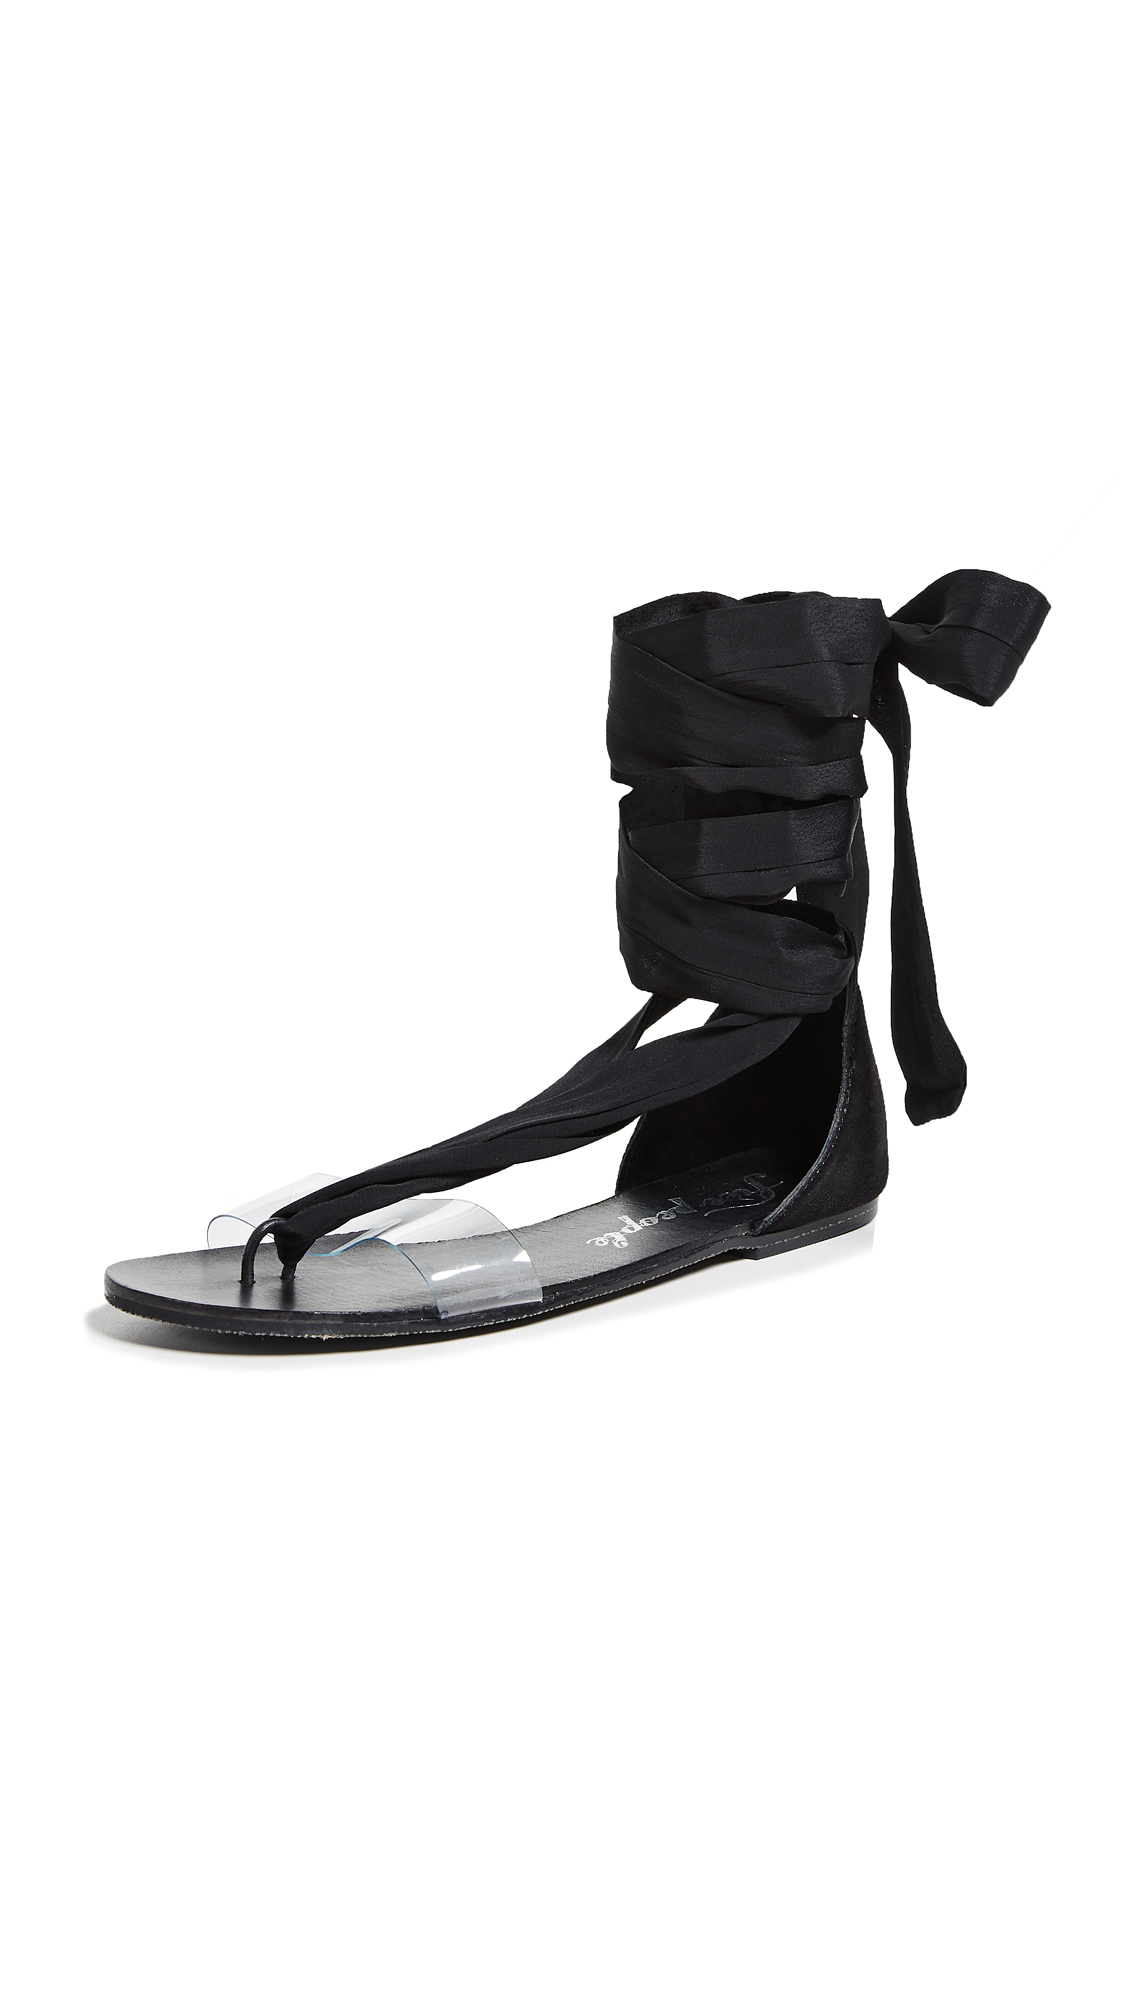 Free People Barcelona Wrap Sandals - Black